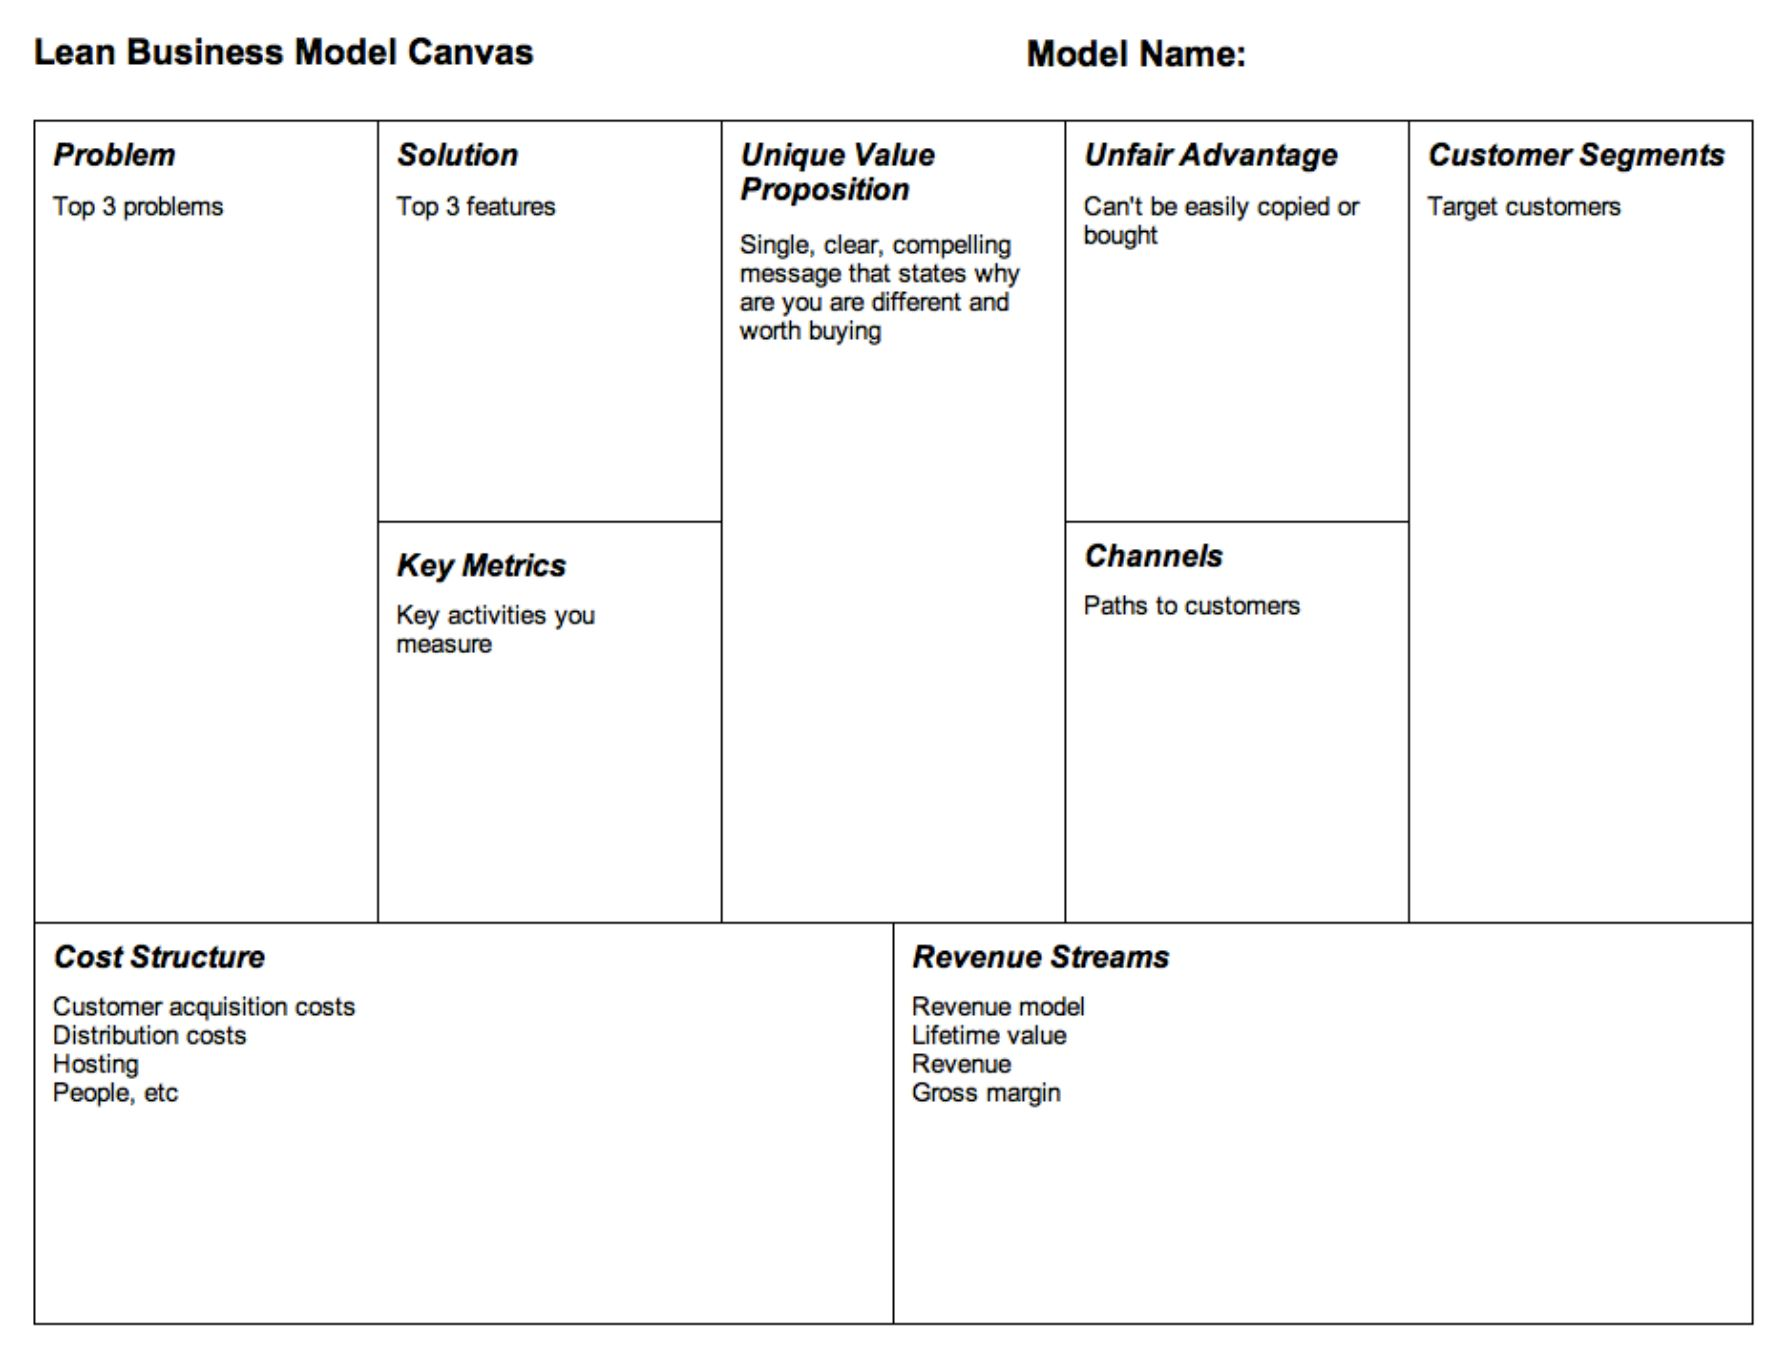 Lean Business Model Canvas   Pdf   Startup Business Plan With ...